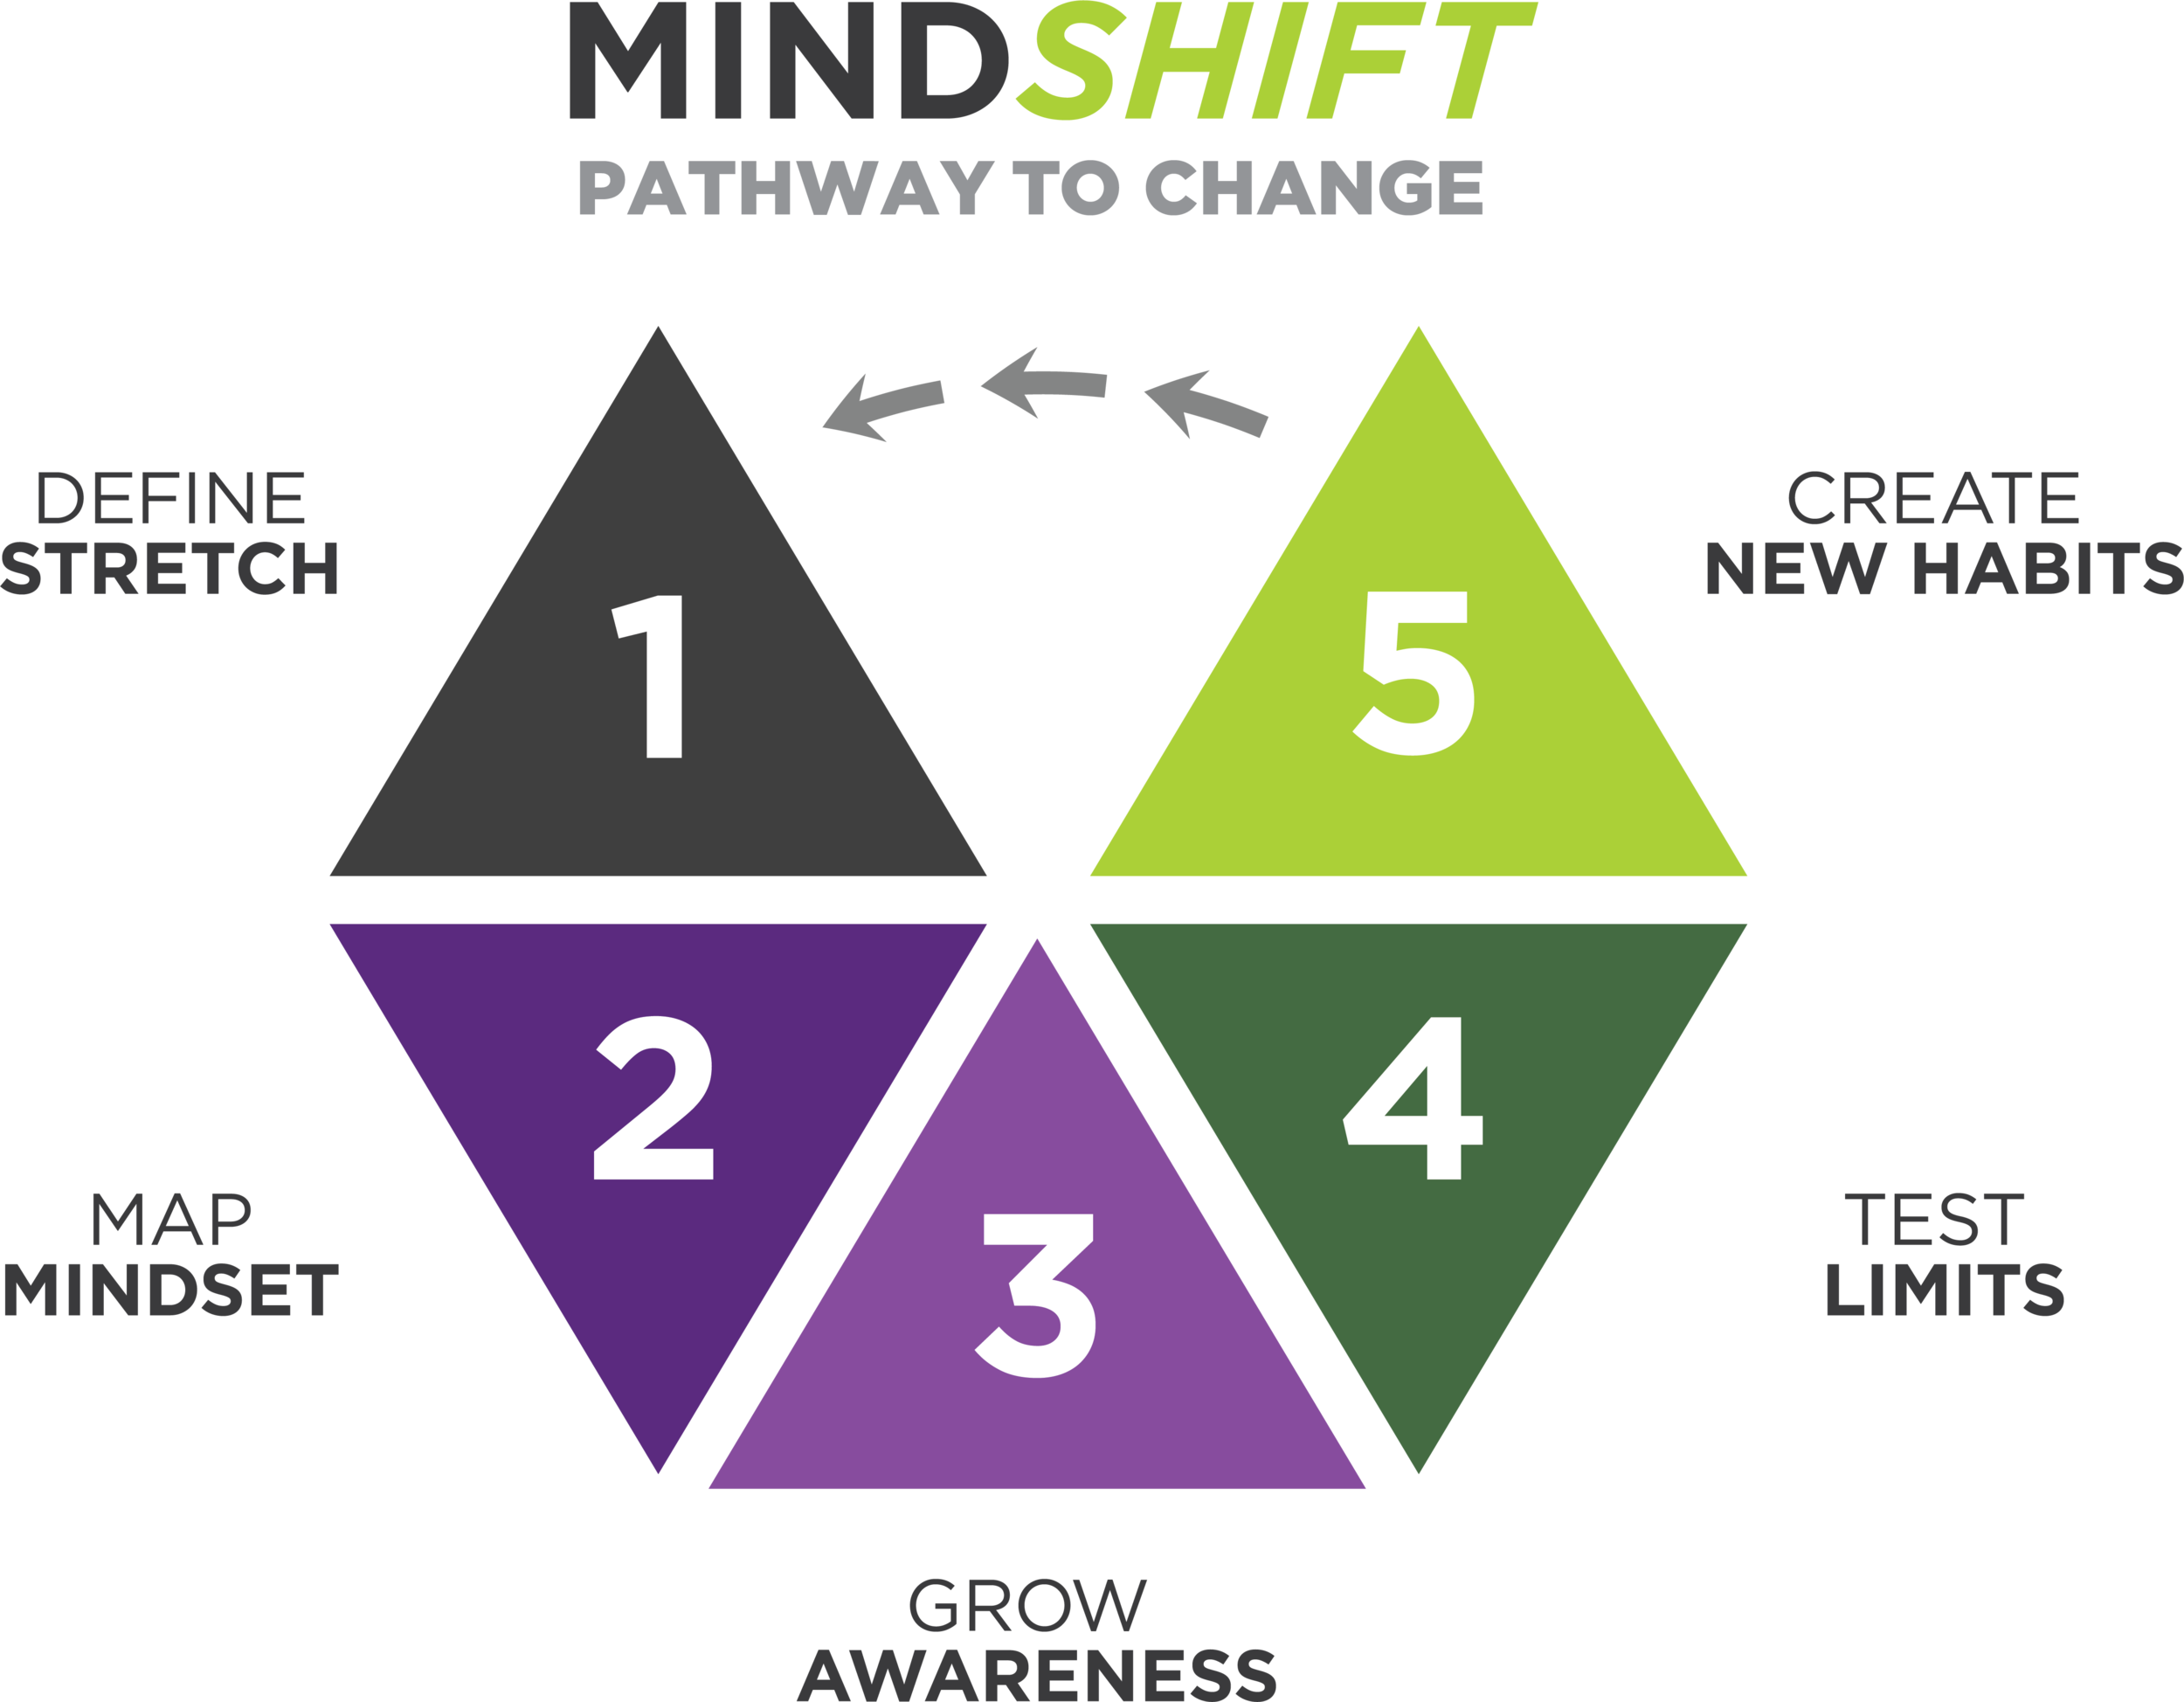 mindshift-hexagon-TITLE.png